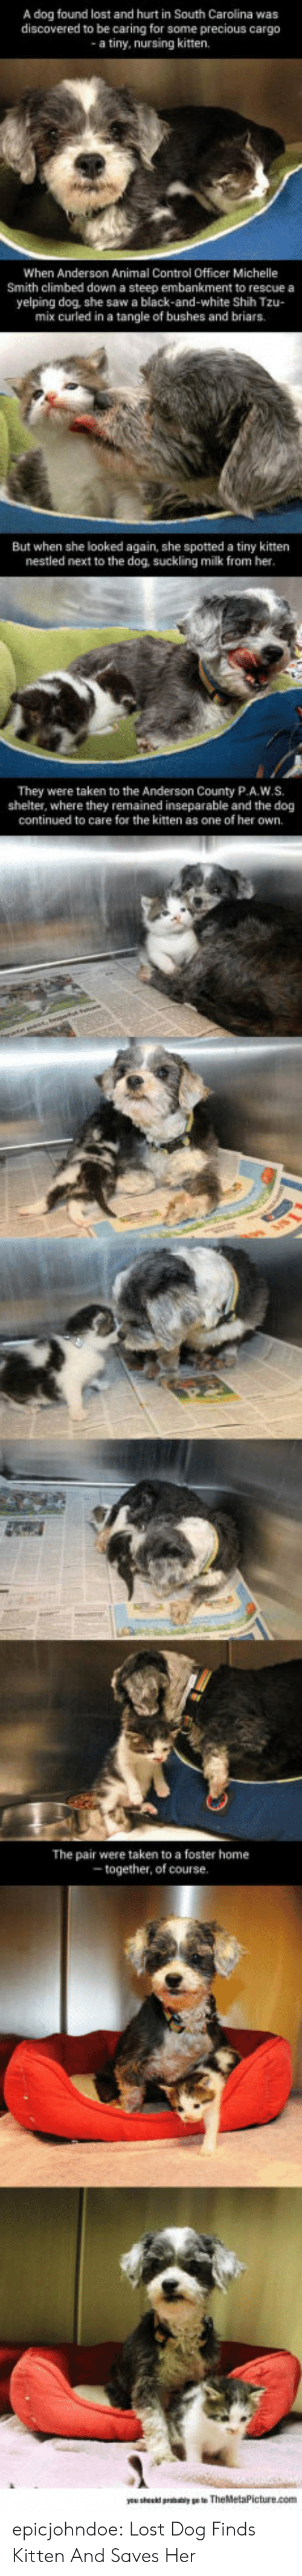 caring: A dog found lost and hurt in South Carolina was  discovered to be caring for some precious cargo  a tiny, nursing kitten.  When Anderson Animal Control Officer Michelle  Smith climbed down a steep embankment to rescue a  yelping dog, she saw a black-and-white Shih Tzu-  mix curled in a tangle of bushes and briars.  But when she looked again, she spotted a tiny kitten  nestled next to the dog, suckling milk from her  They were taken to the Anderson County P.A.W.S.  shelter, where they remained inseparable and the dog  continued to care for the kitten as one of her own.  The pair were taken to a foster home  together, of course epicjohndoe:  Lost Dog Finds Kitten And Saves Her